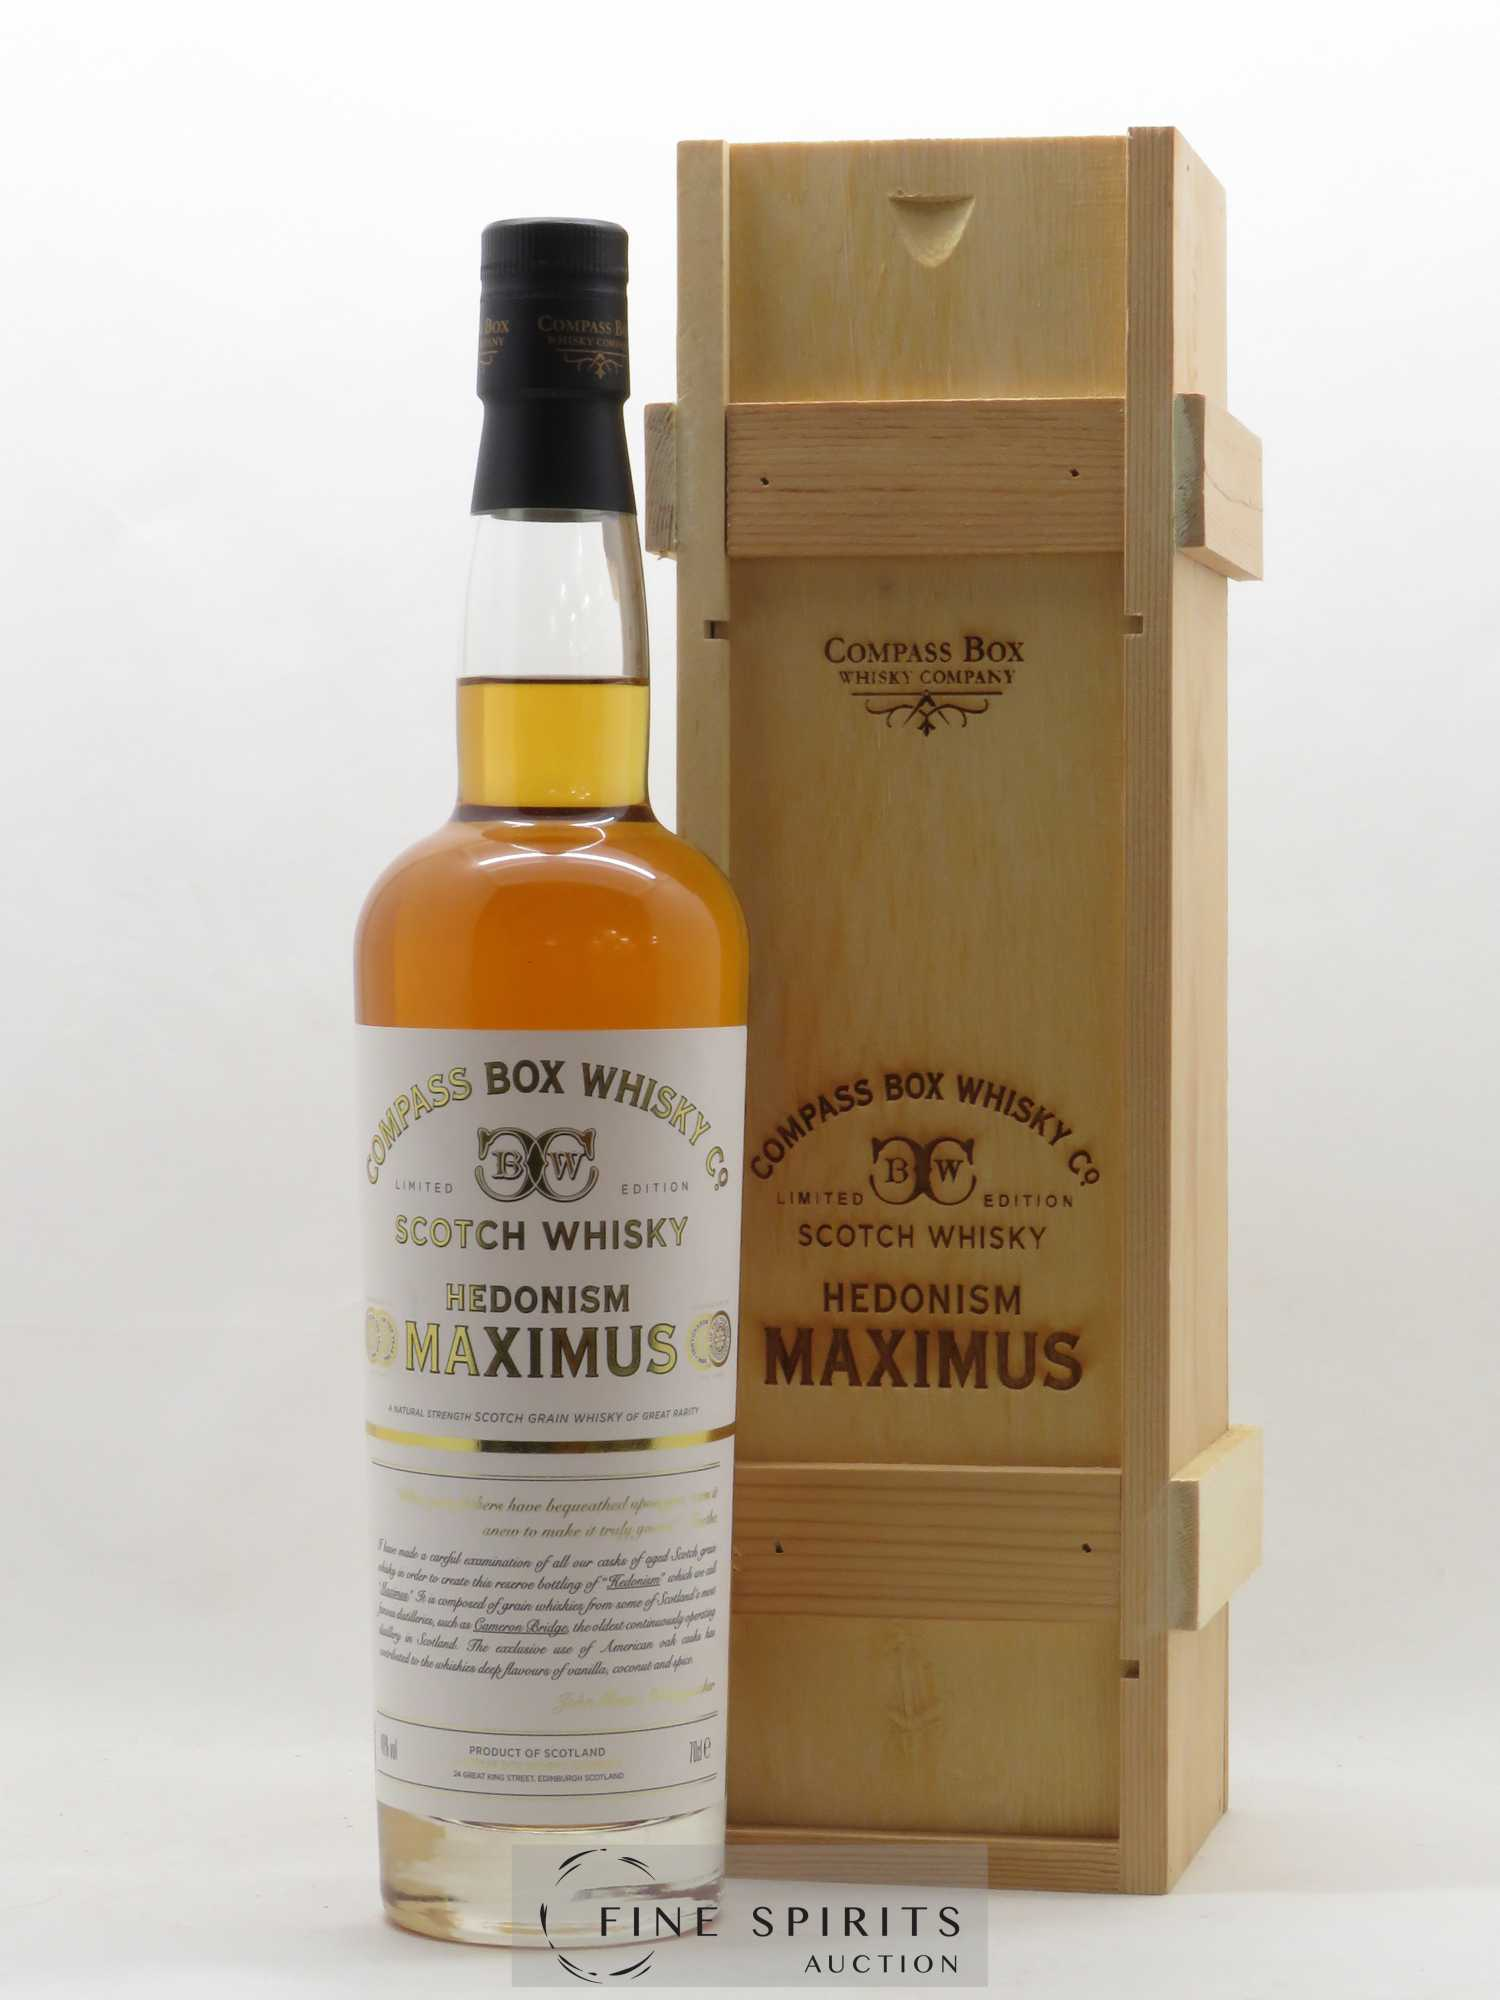 Hedonism Compass Box Maximus Limited Edition   - Lot de 1 Bouteille